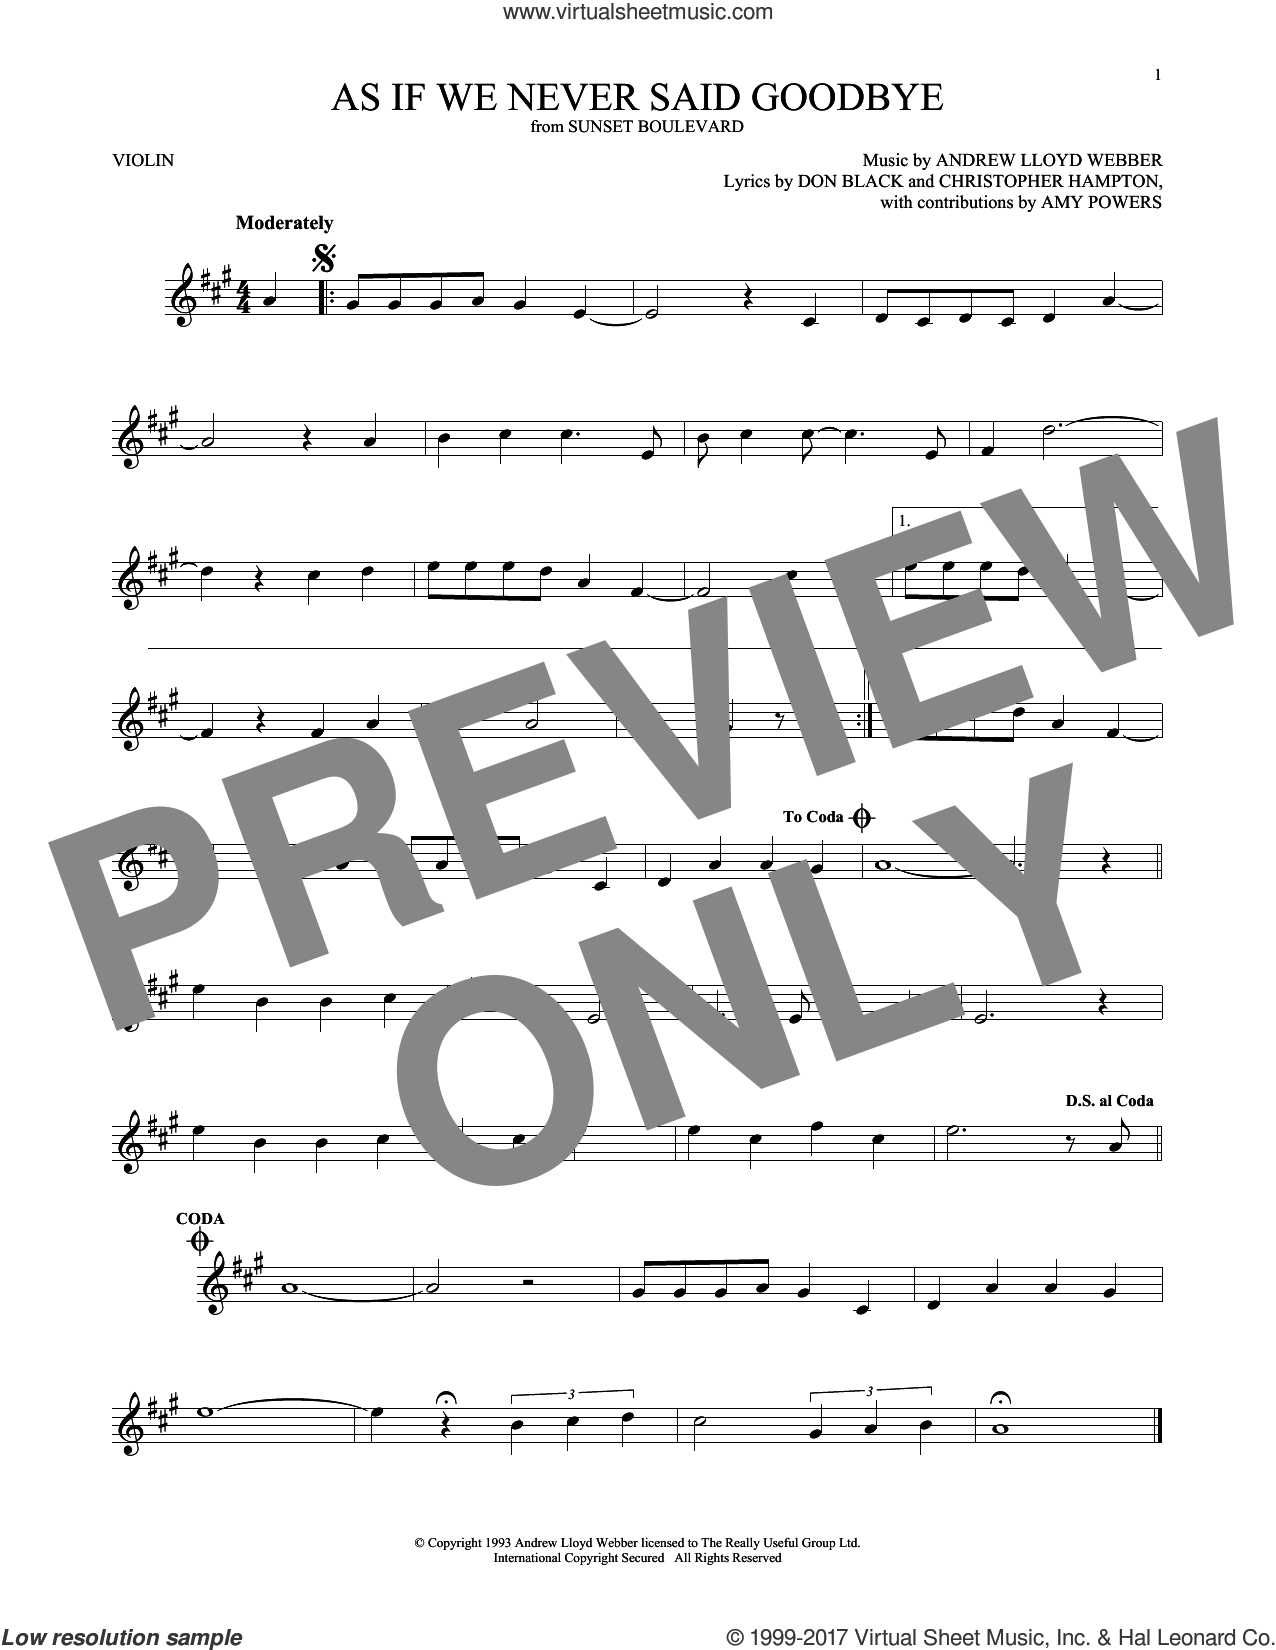 As If We Never Said Goodbye sheet music for violin solo by Andrew Lloyd Webber, Christopher Hampton and Don Black, intermediate skill level